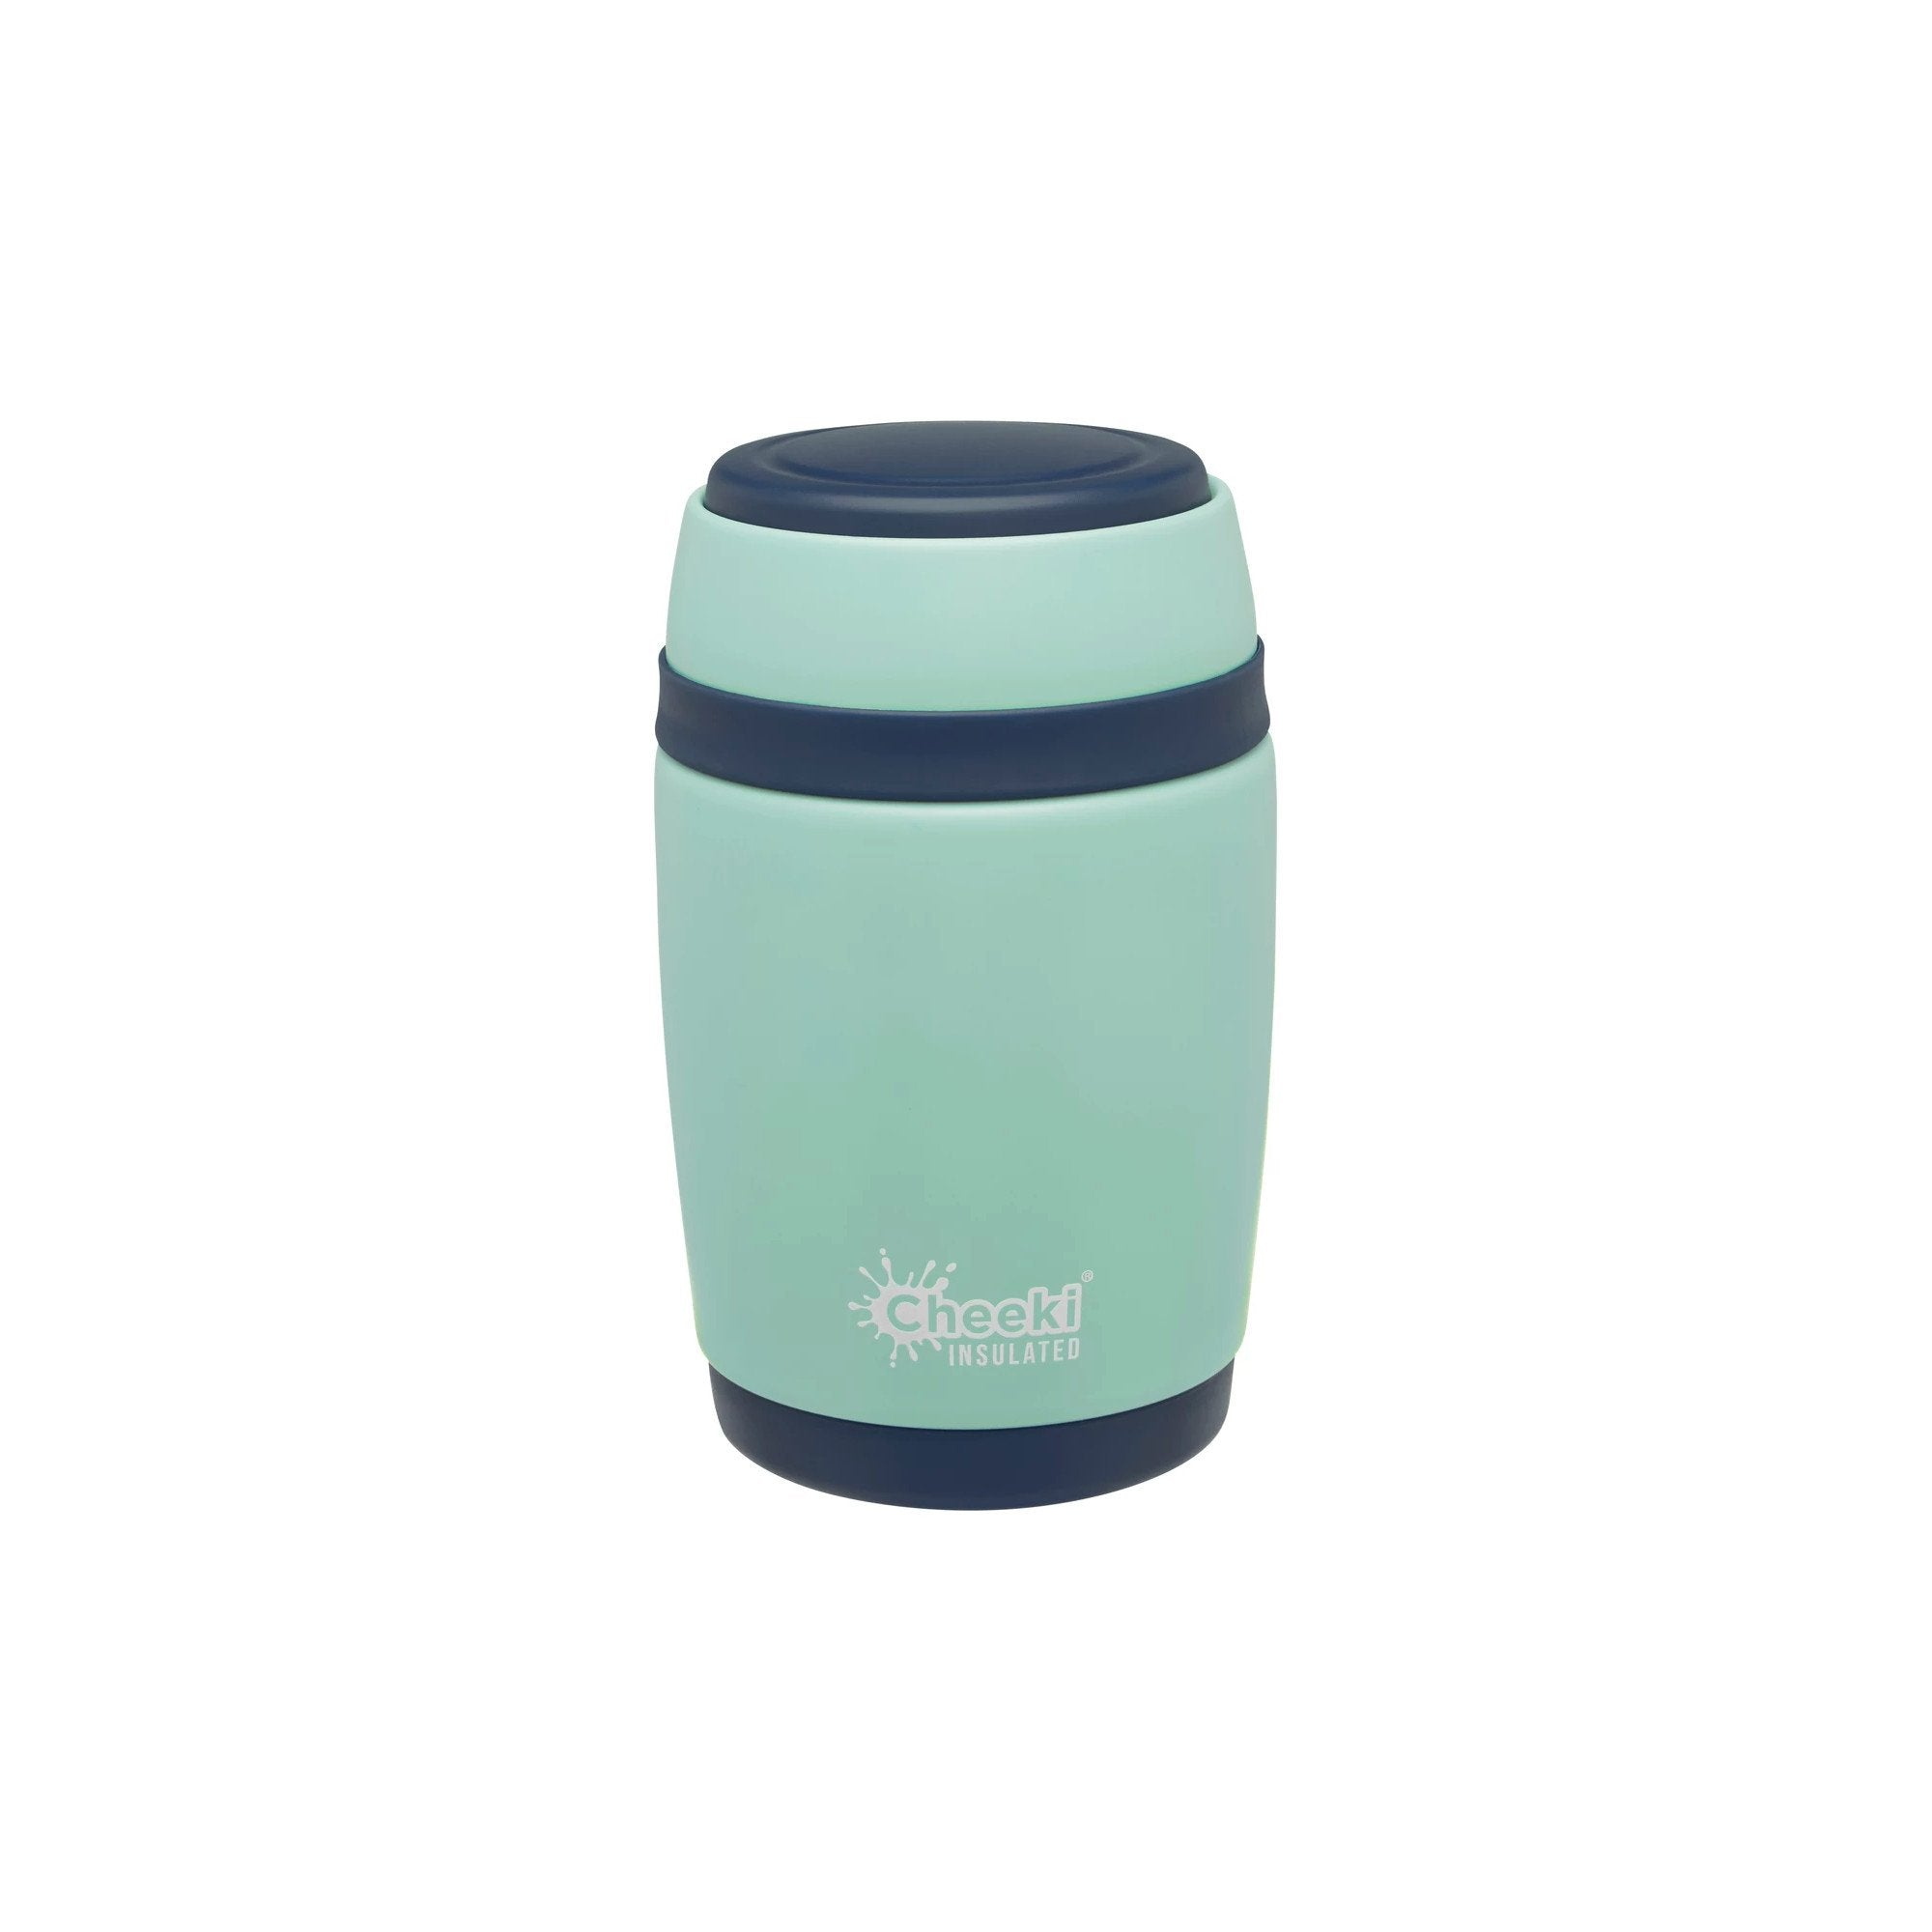 Cheeki Insulated Food Jar 480ml Cheeki Food Storage Containers Pistachio at Little Earth Nest Eco Shop